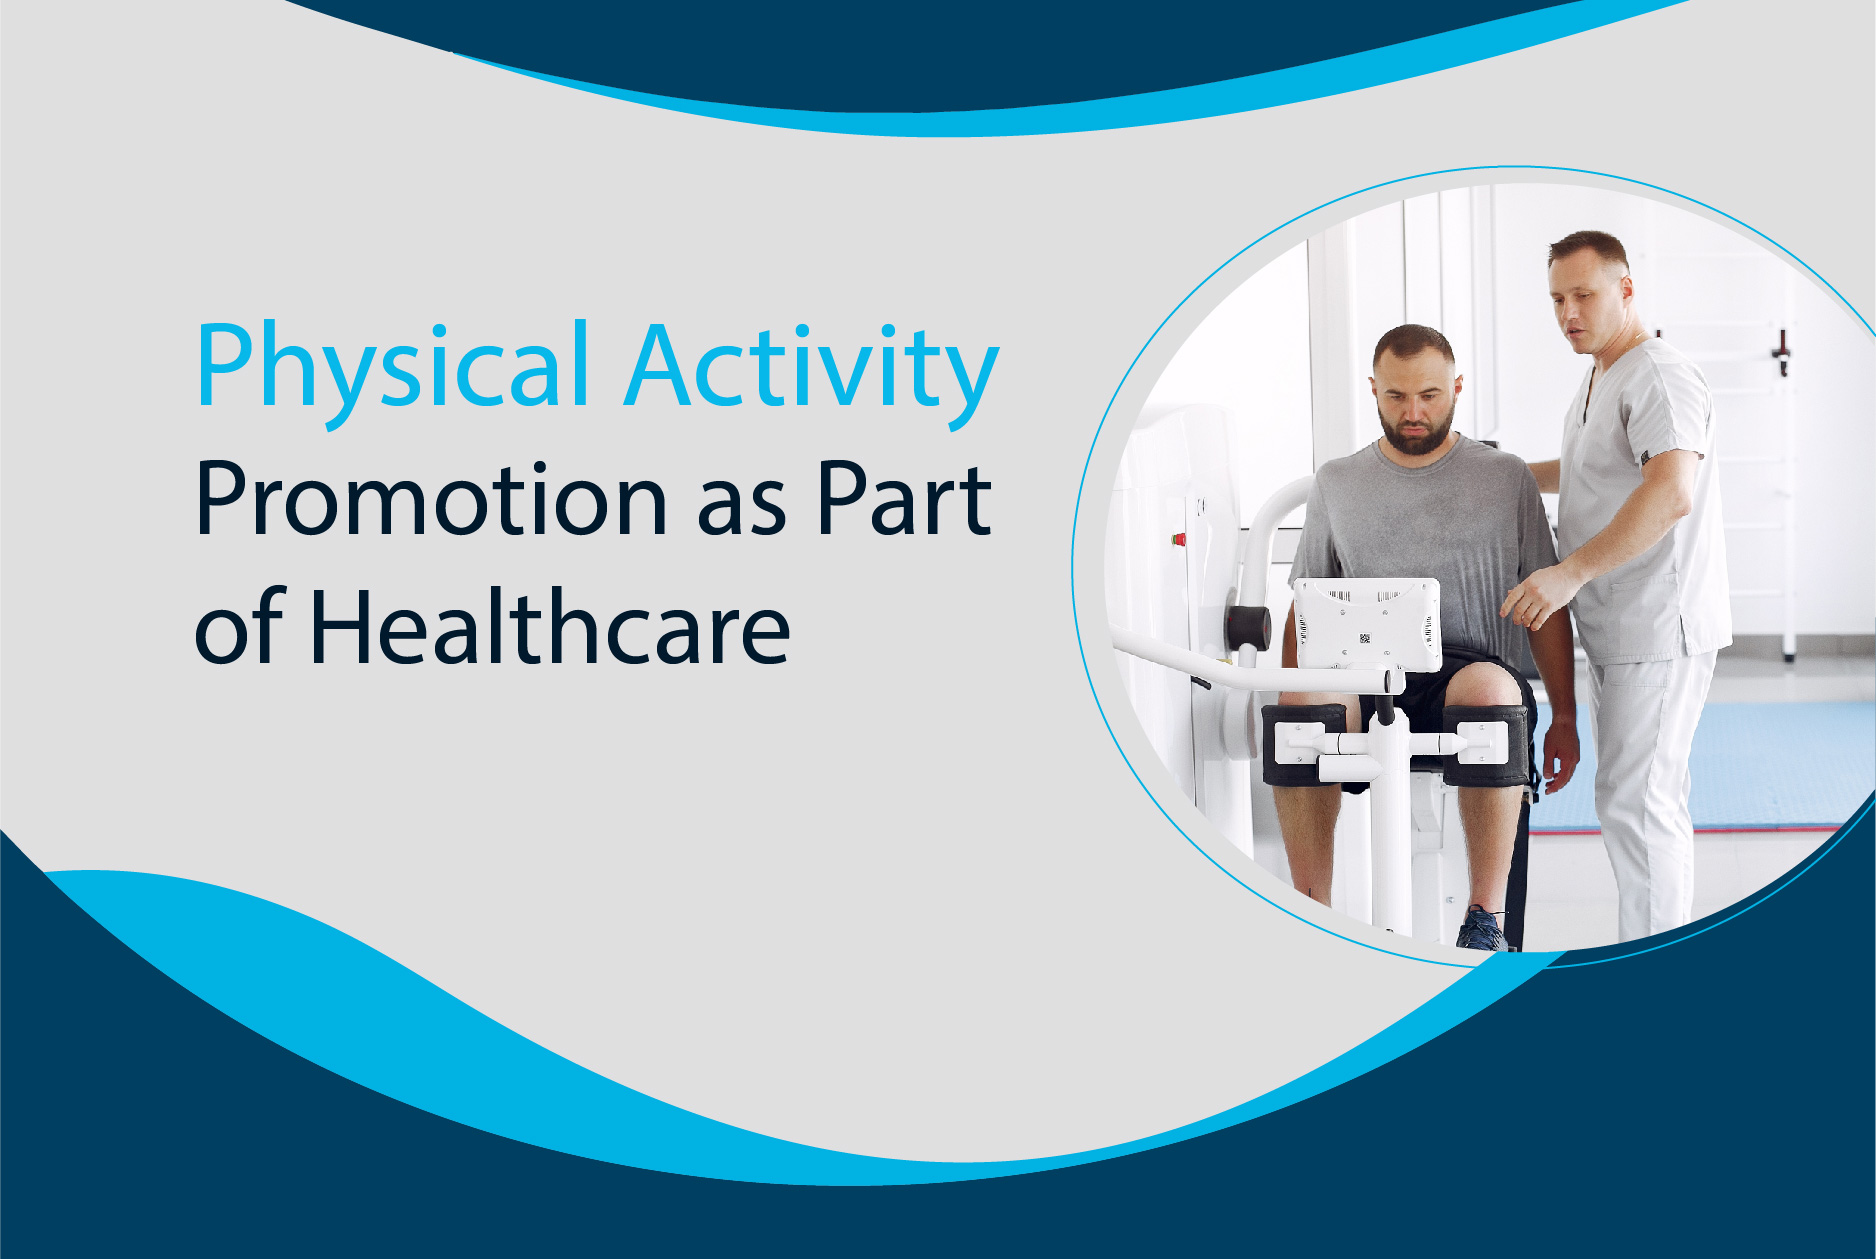 Physical Activity Promotion as Part of Healthcare